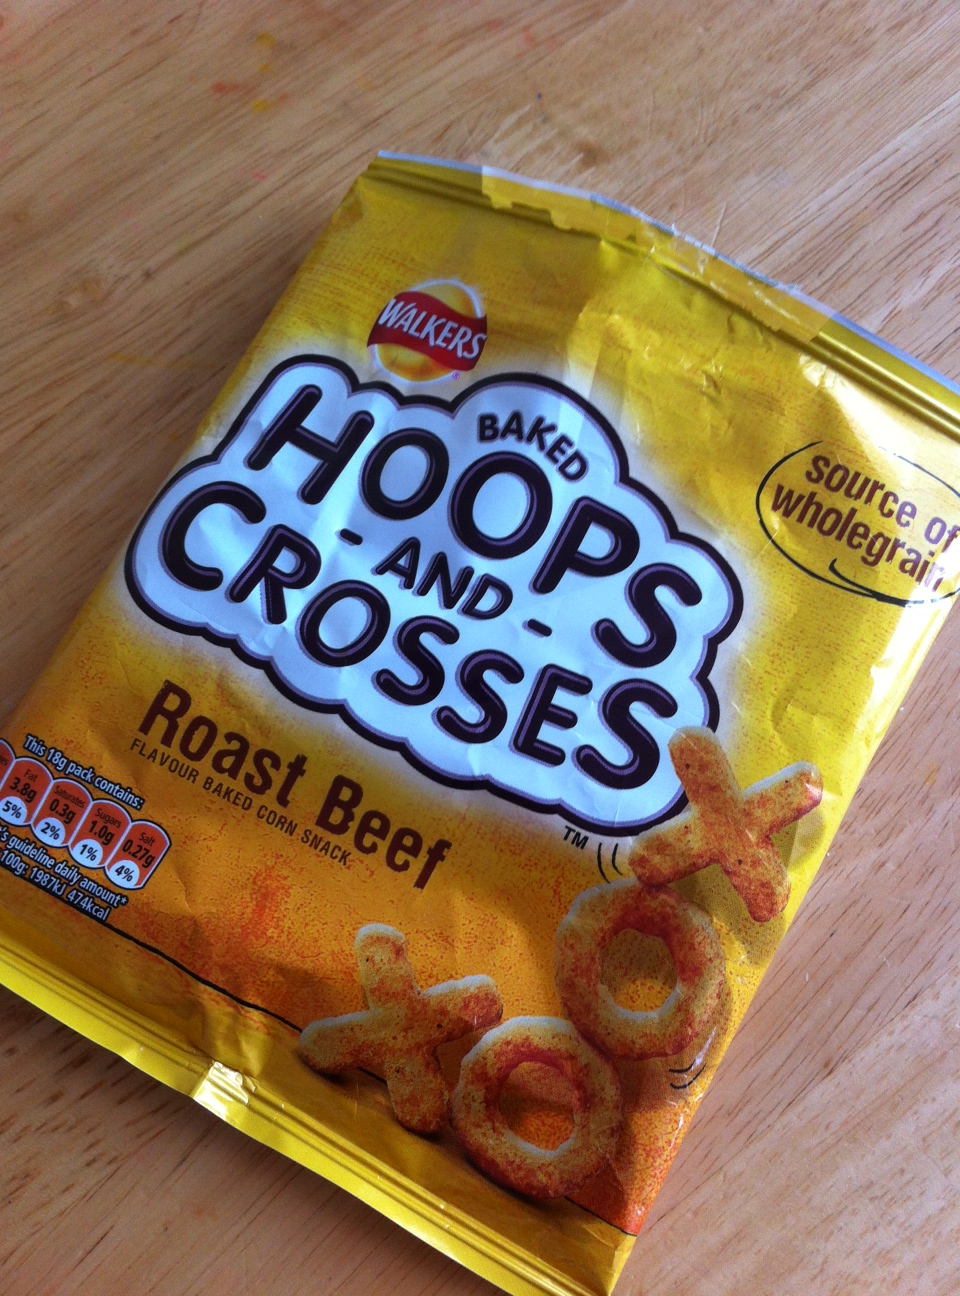 Walkers Hoops and Crosses Review